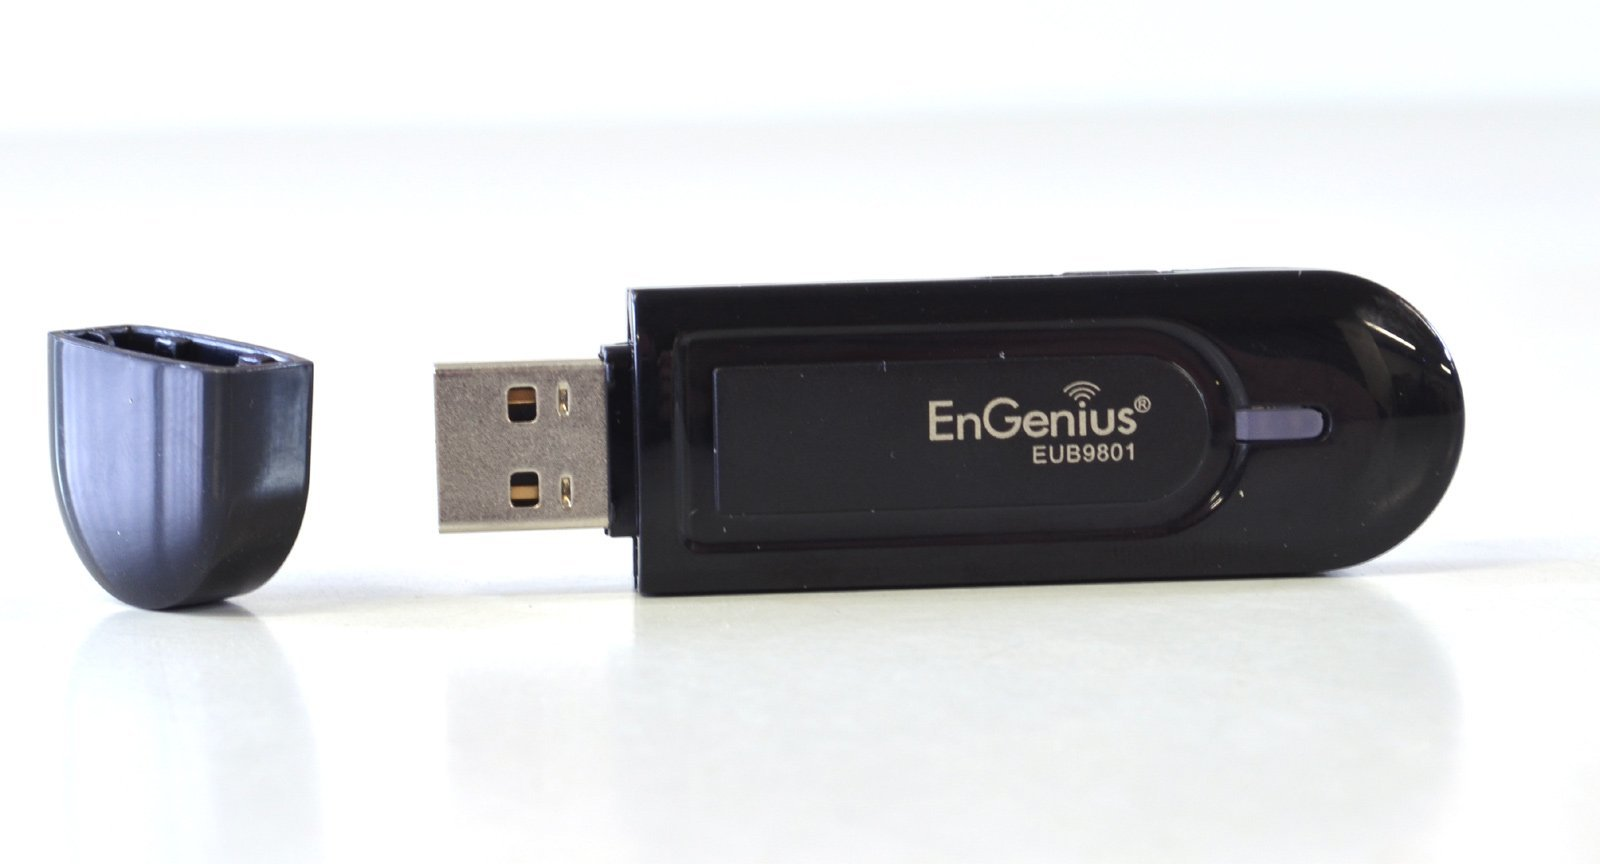 Engenius Eub9801 Dual Band 5Ghz 2.4Ghz Wireless Usb Wi-Fi Adapter Dongle 300Mbps Black